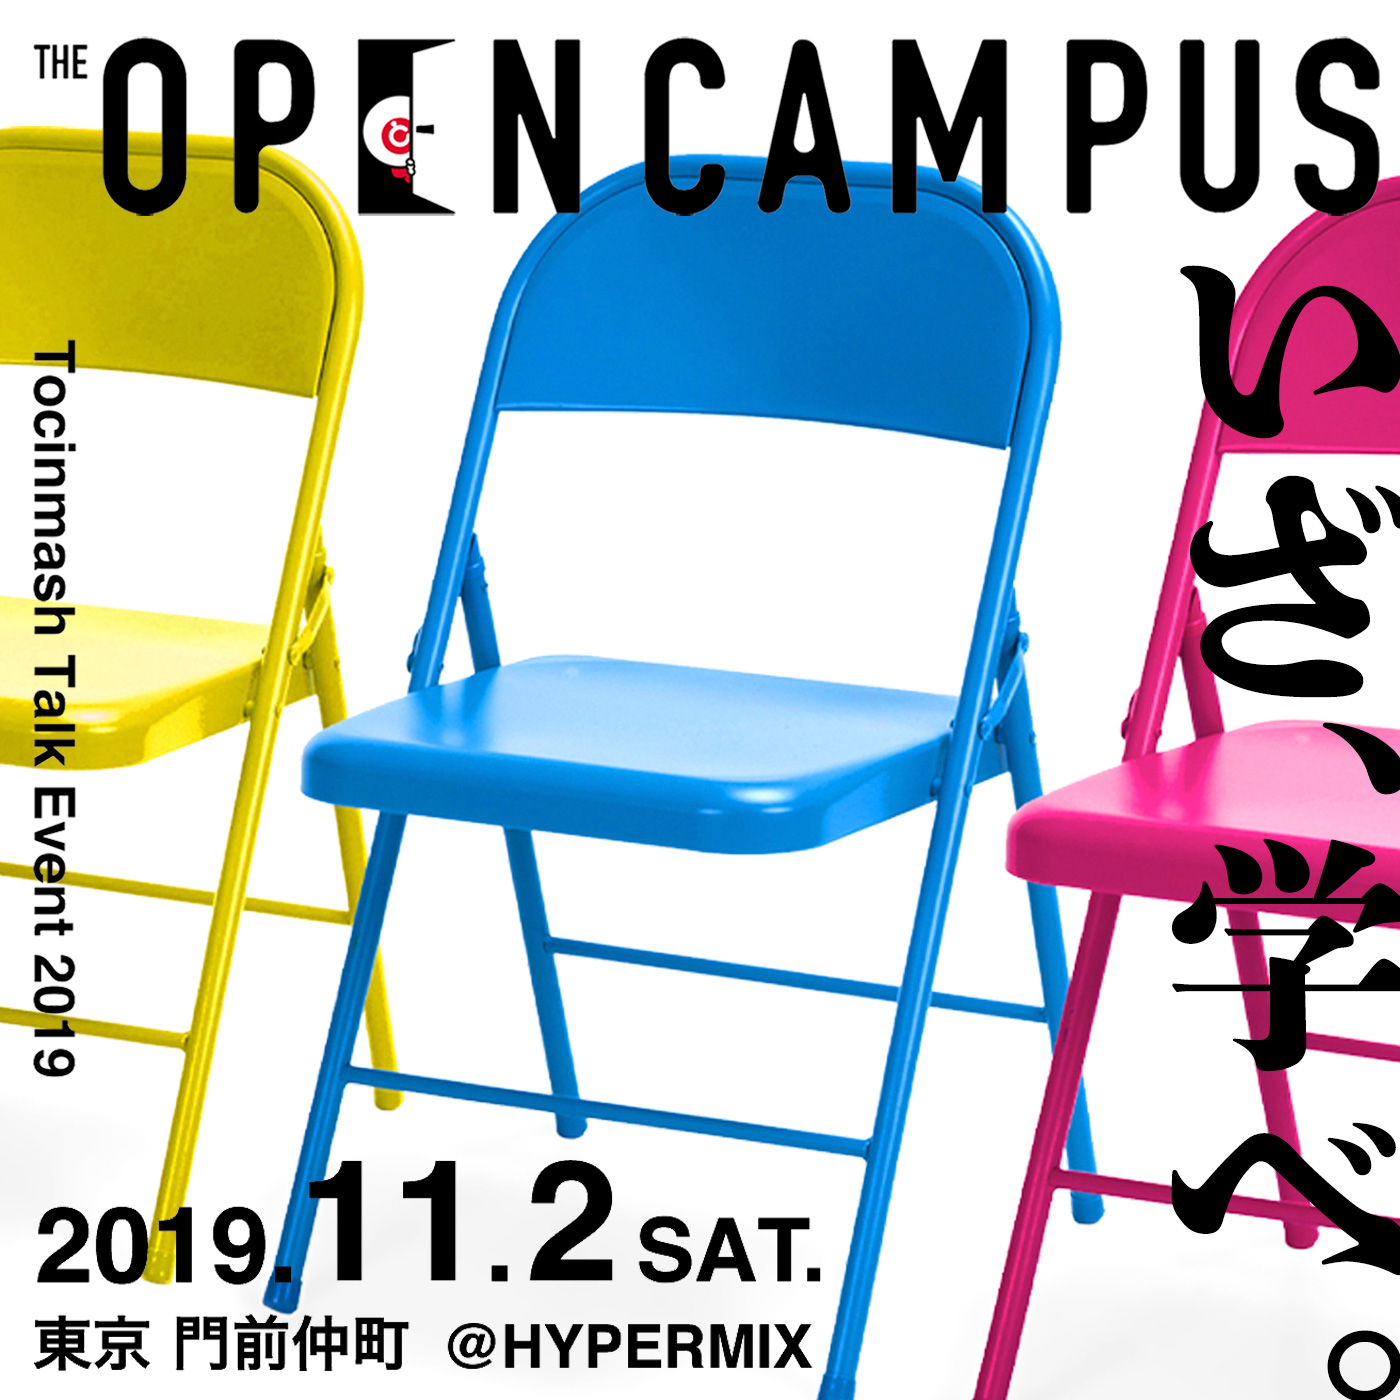 Tocinmash Talk Event 2019 『THE OPEN CAMPUS』